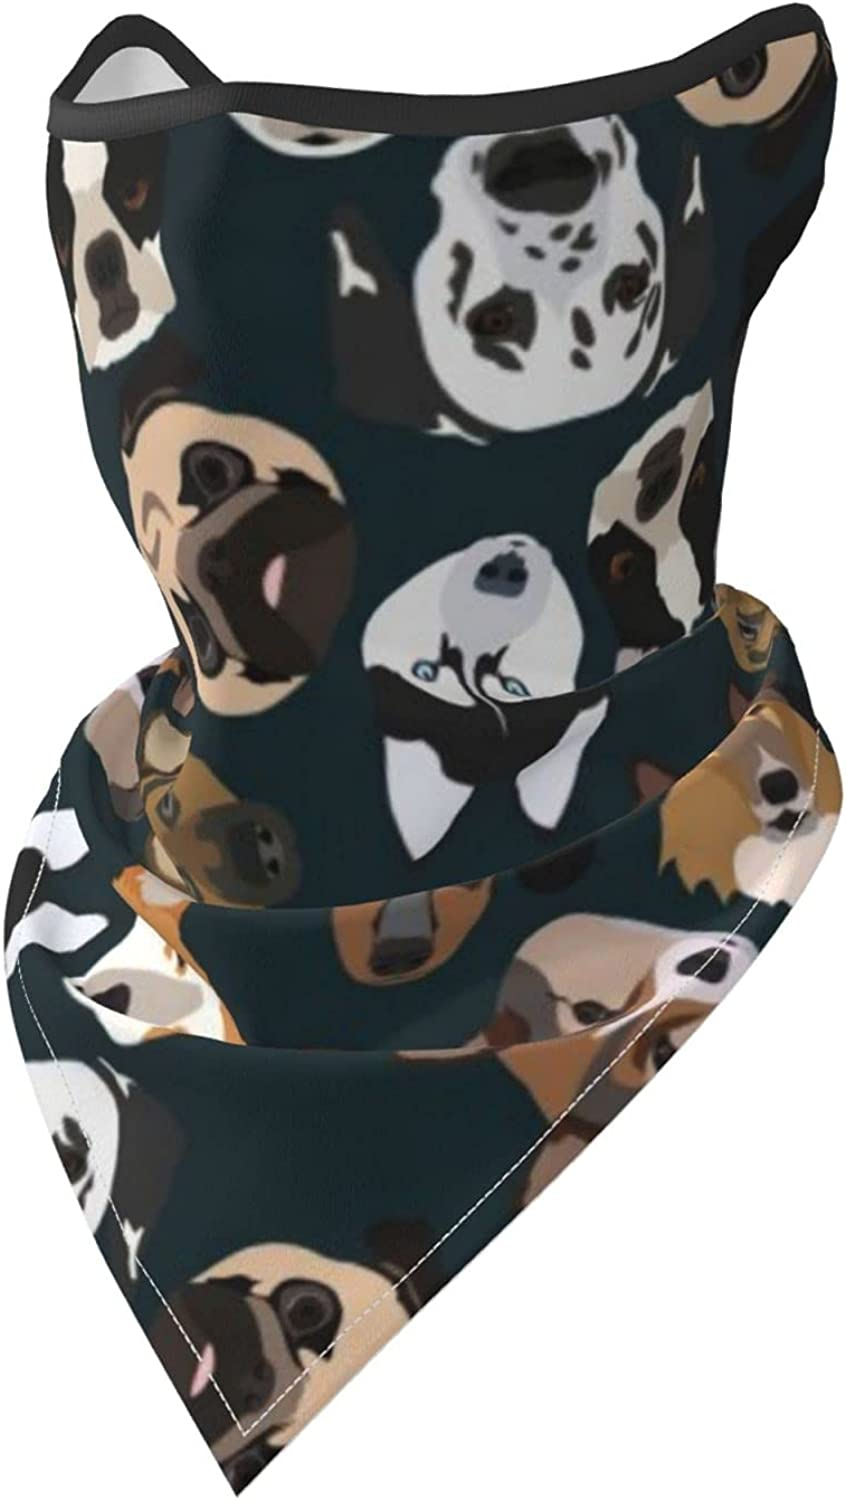 Dogs Breathable Bandana Face Mask Neck Gaiter Windproof Sports Mask Scarf Headwear for Men Women Outdoor Hiking Cycling Running Motorcycling